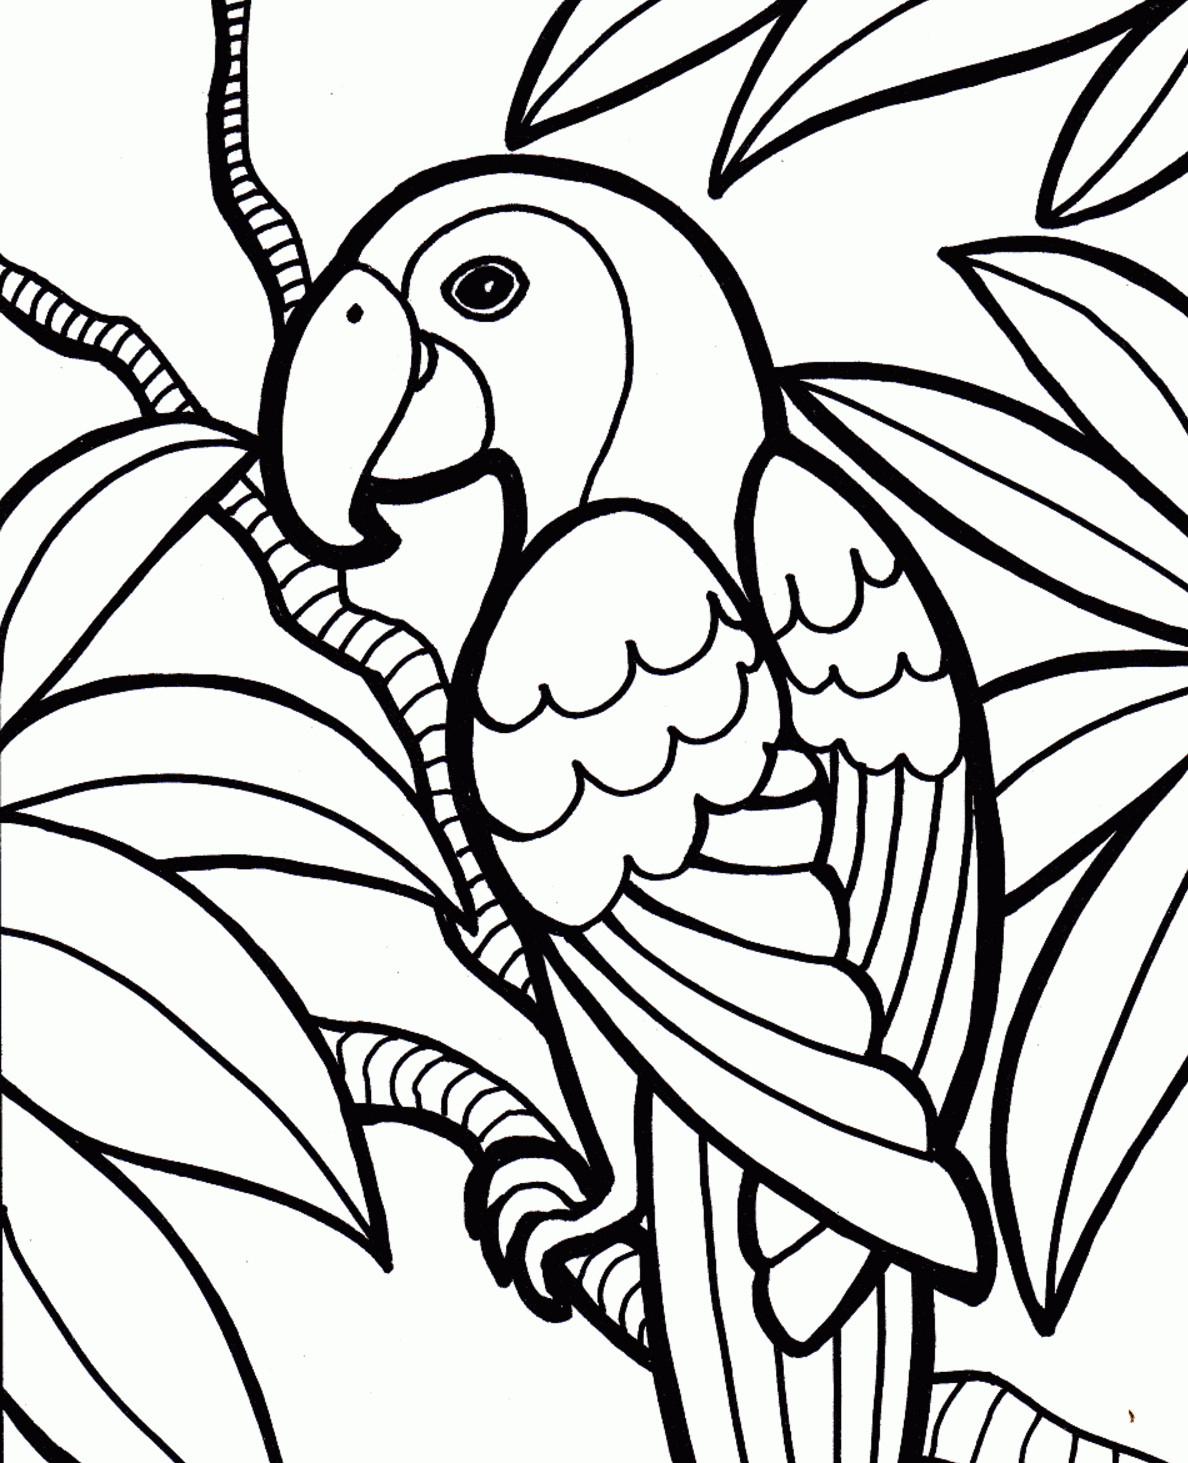 Parrot Coloring Pages #35552 - Free Printable Parrot Coloring Pages